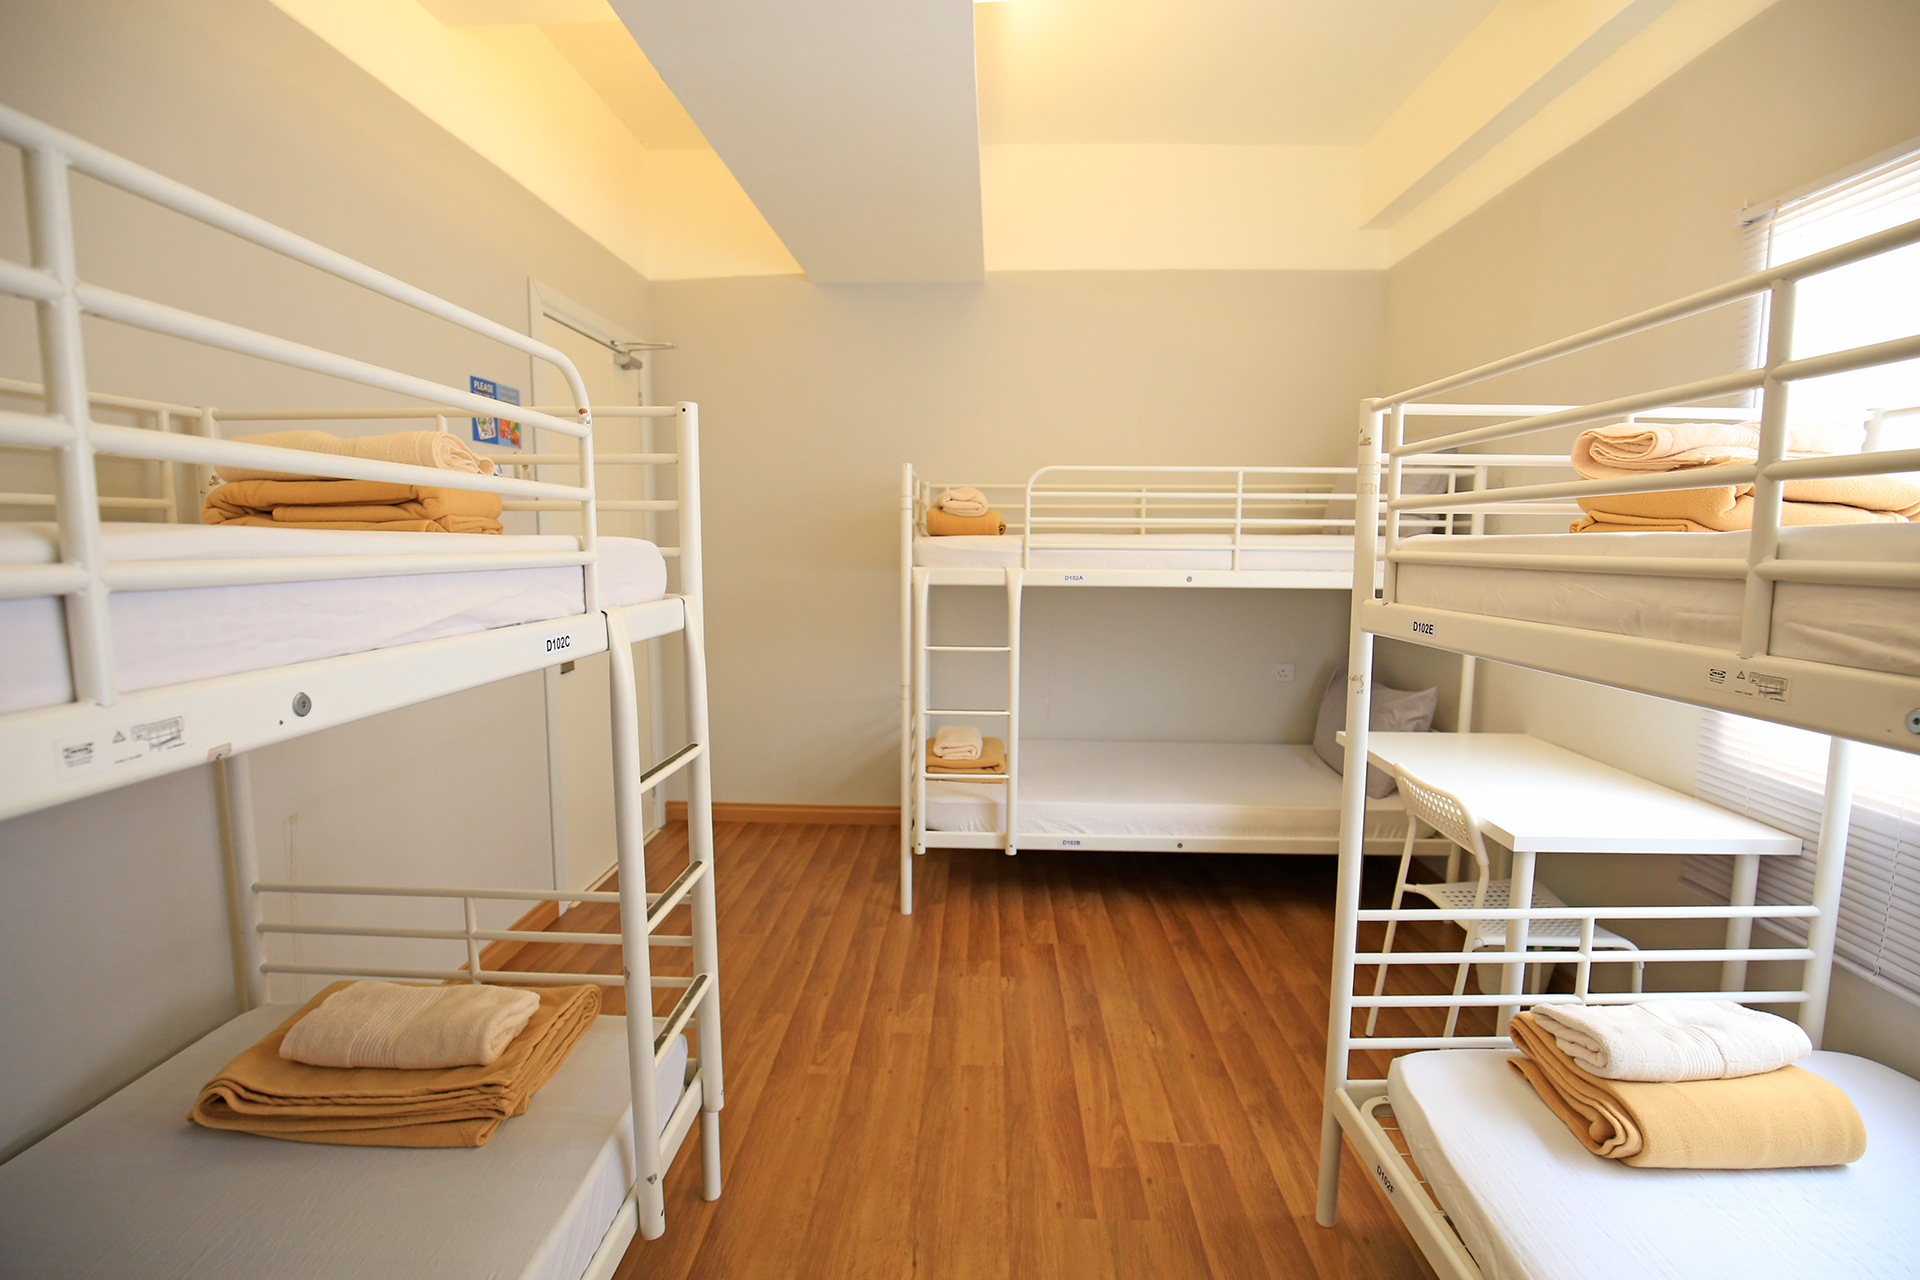 Dormitory 8-Bed